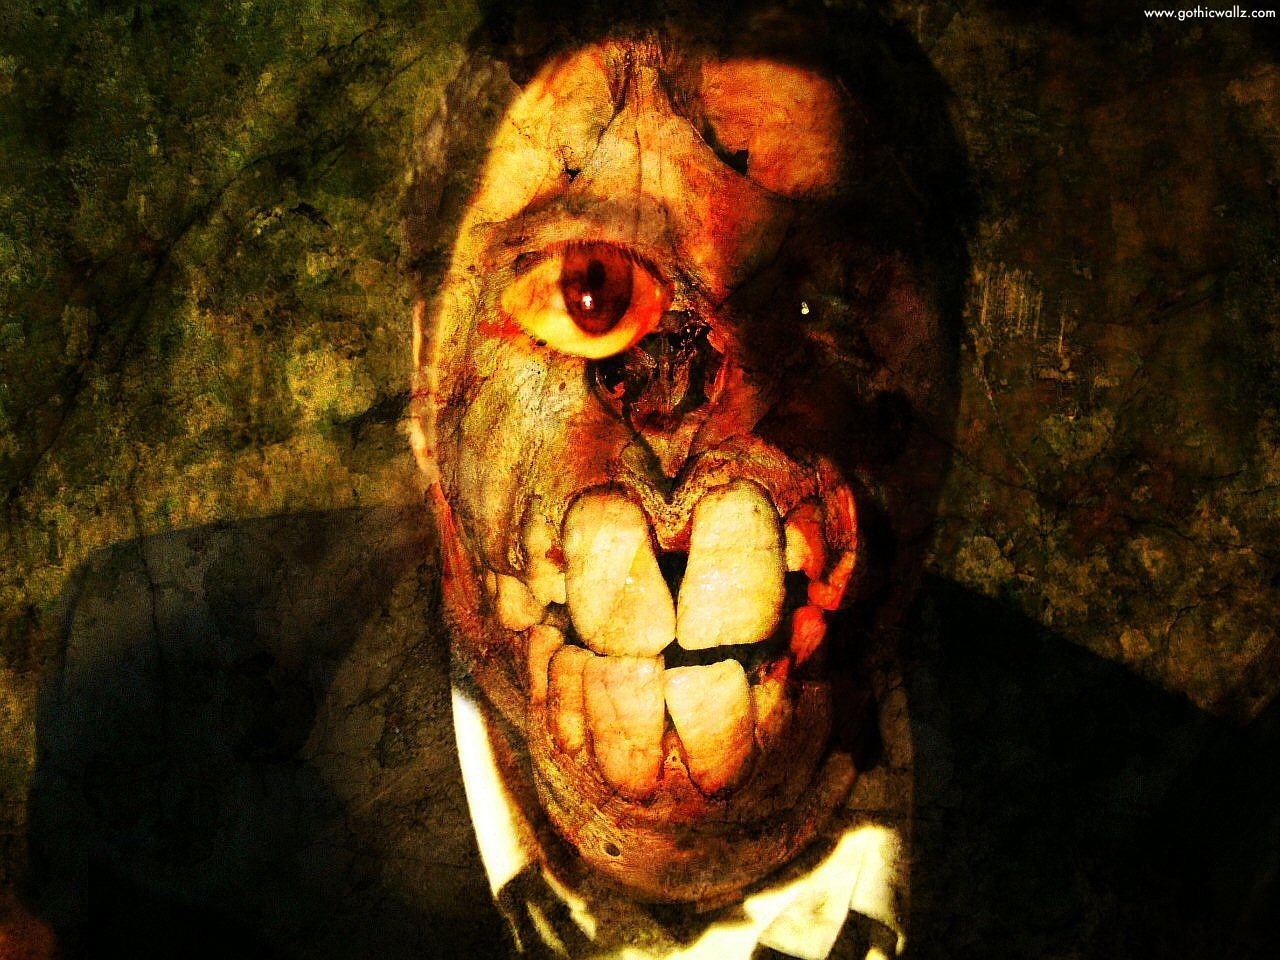 Extreme Creepy Face | Dark Gothic Wallpaper Download